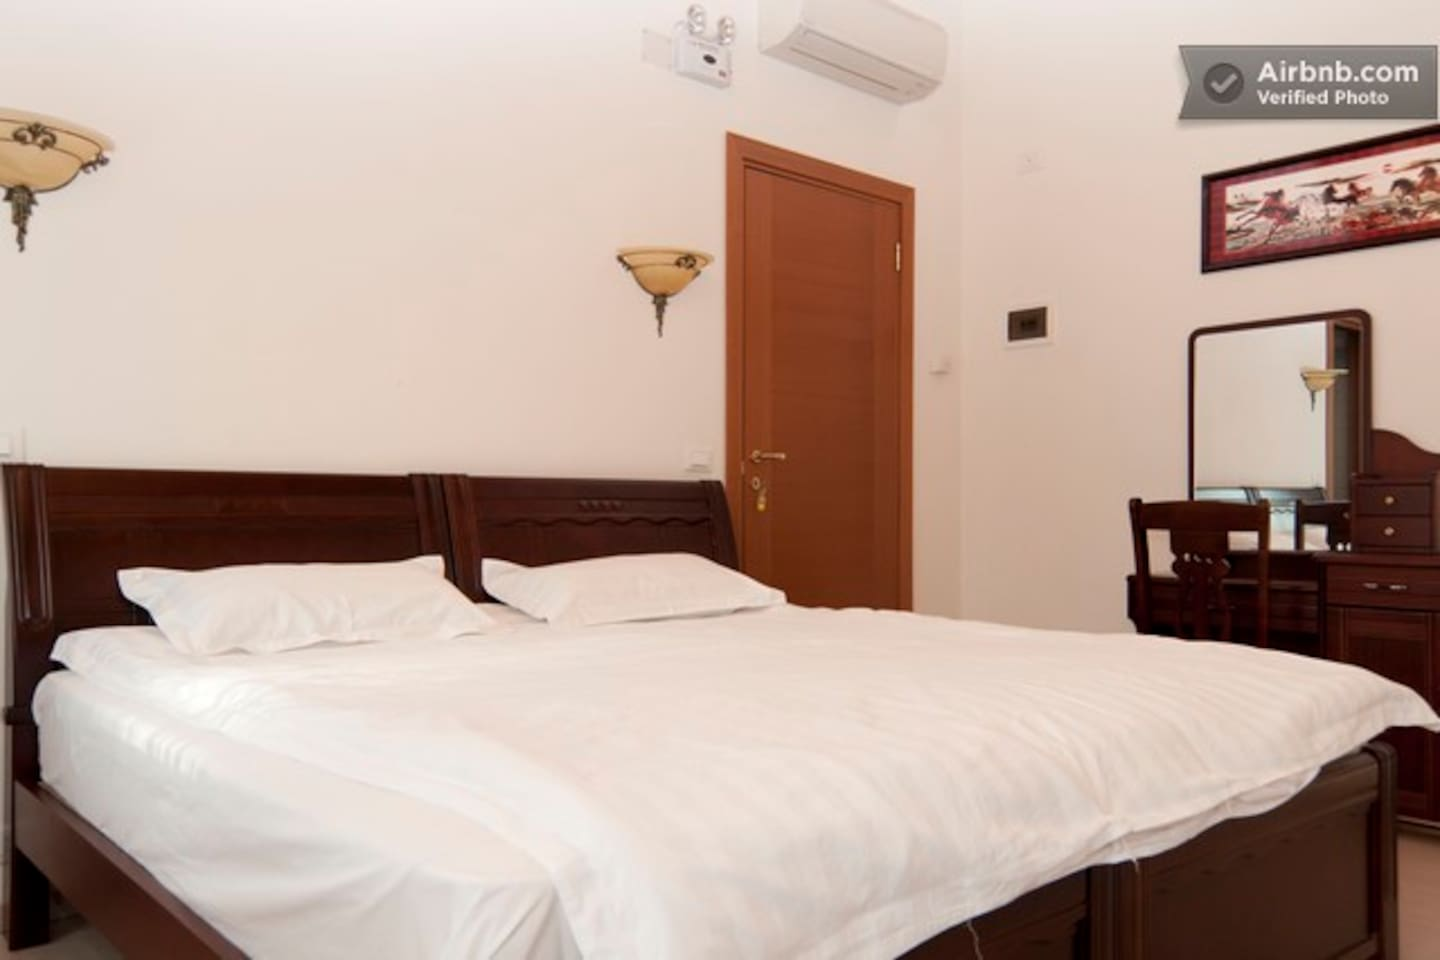 Bed and Breakfast Near Venice -Rm 1